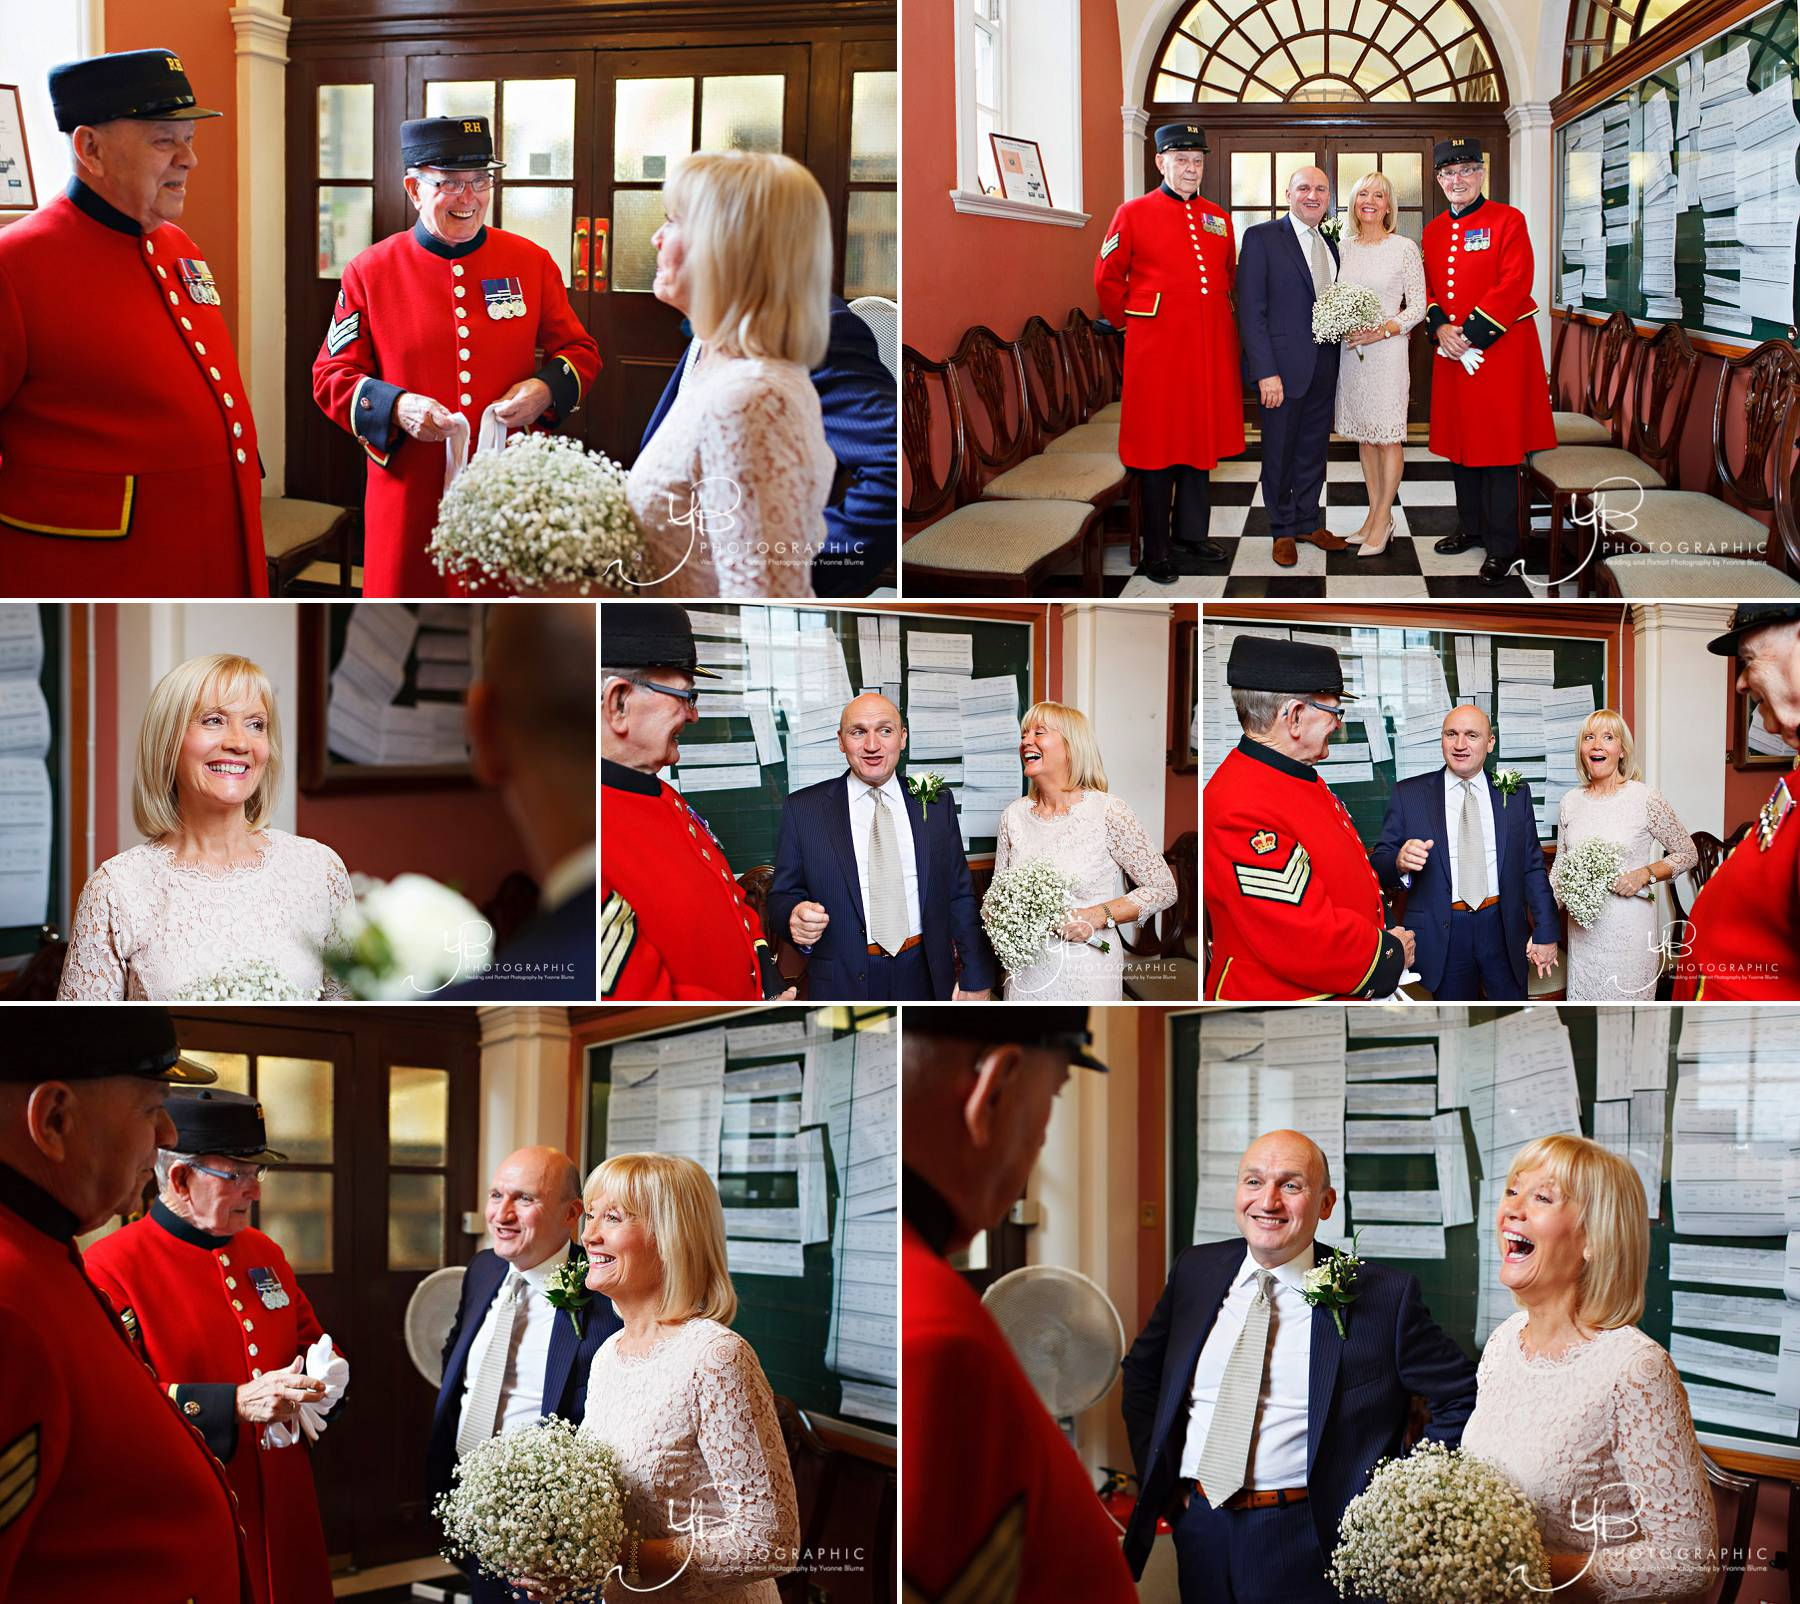 Chelsea Pensioners as you Elopement Witnesses for Chelsea Register Office wedding.